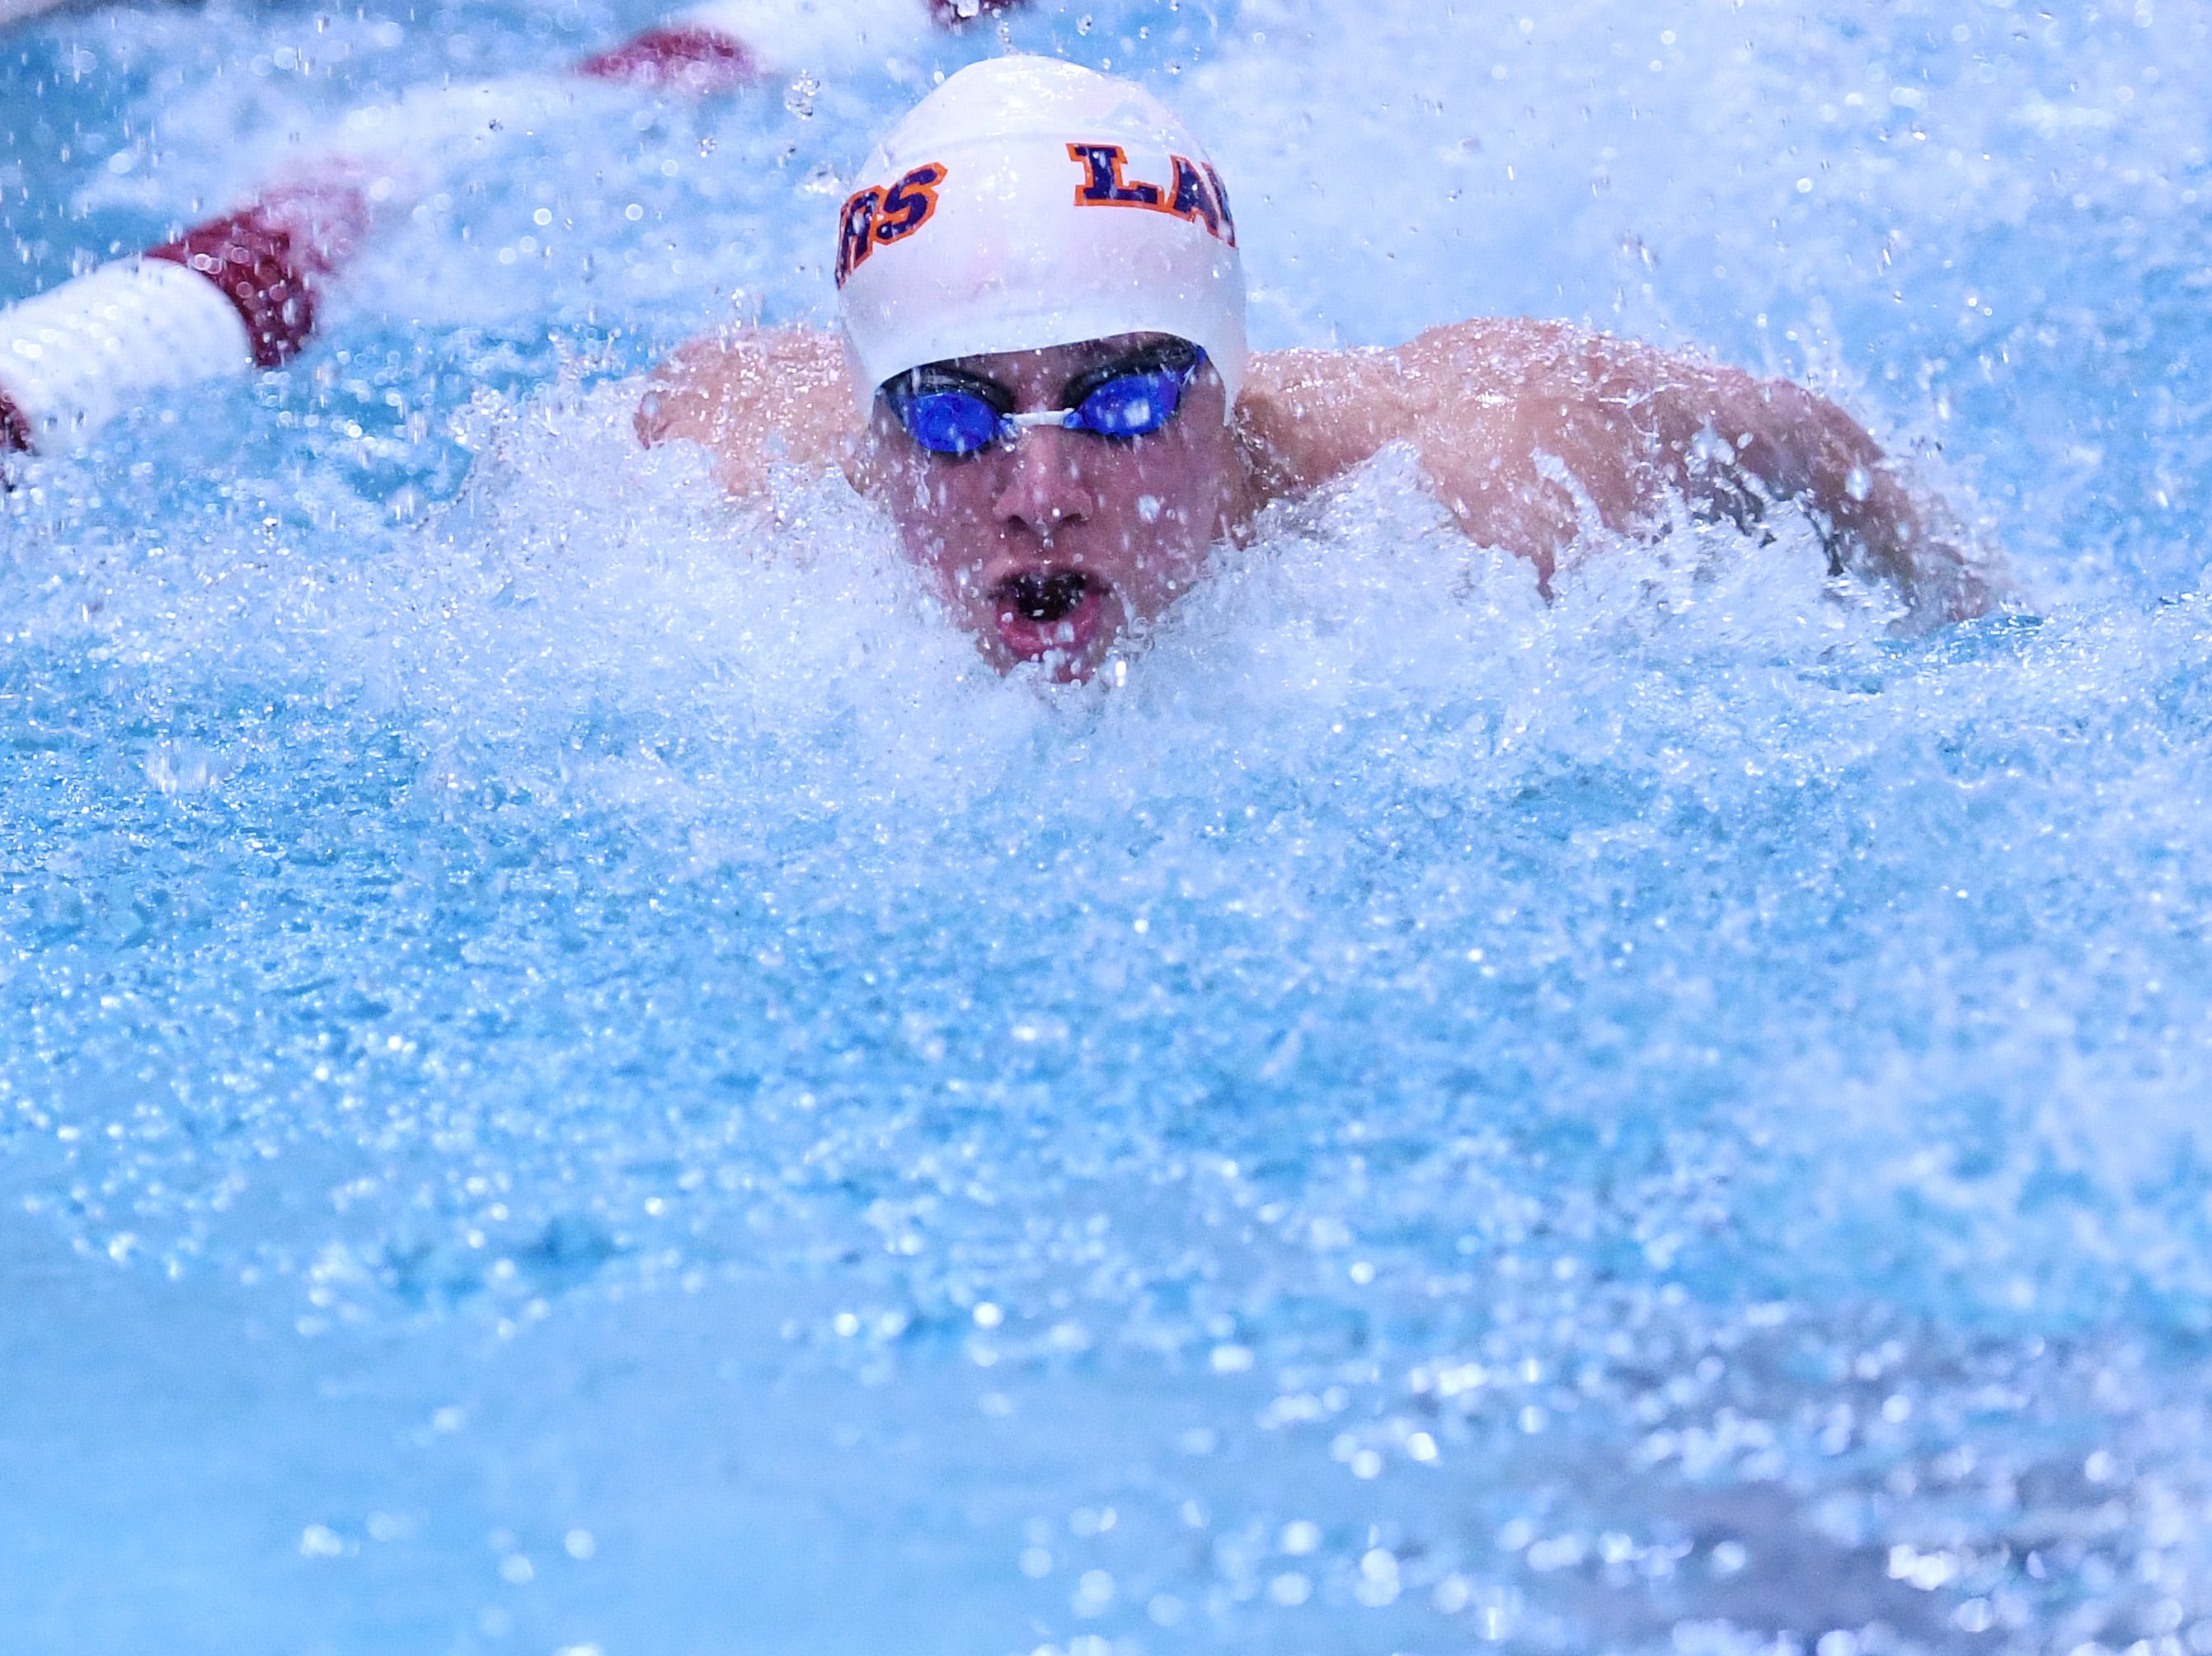 Morris County Swimming Championships at Morristown High School on Saturday, January 26, 2019. Luke Leshnower of Mountain Lakes in the Boys 100 SC Meter Butterfly.